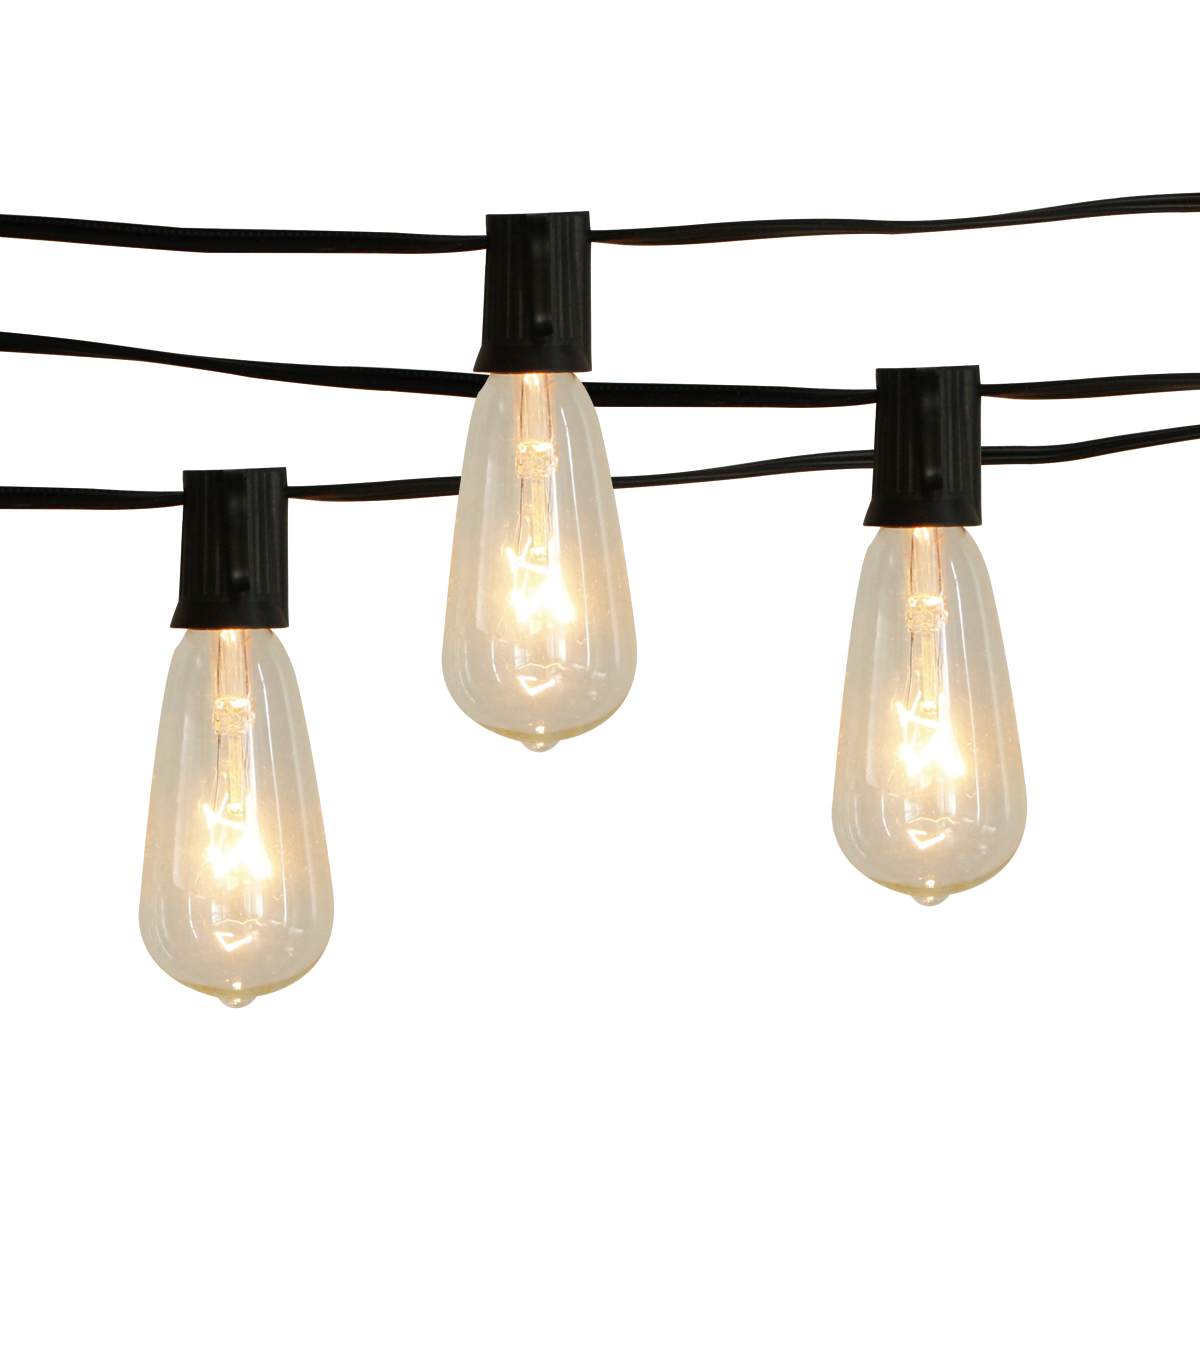 Hudson 43 Candle & Light Collection St40 Clear Edison Bulb String Lights